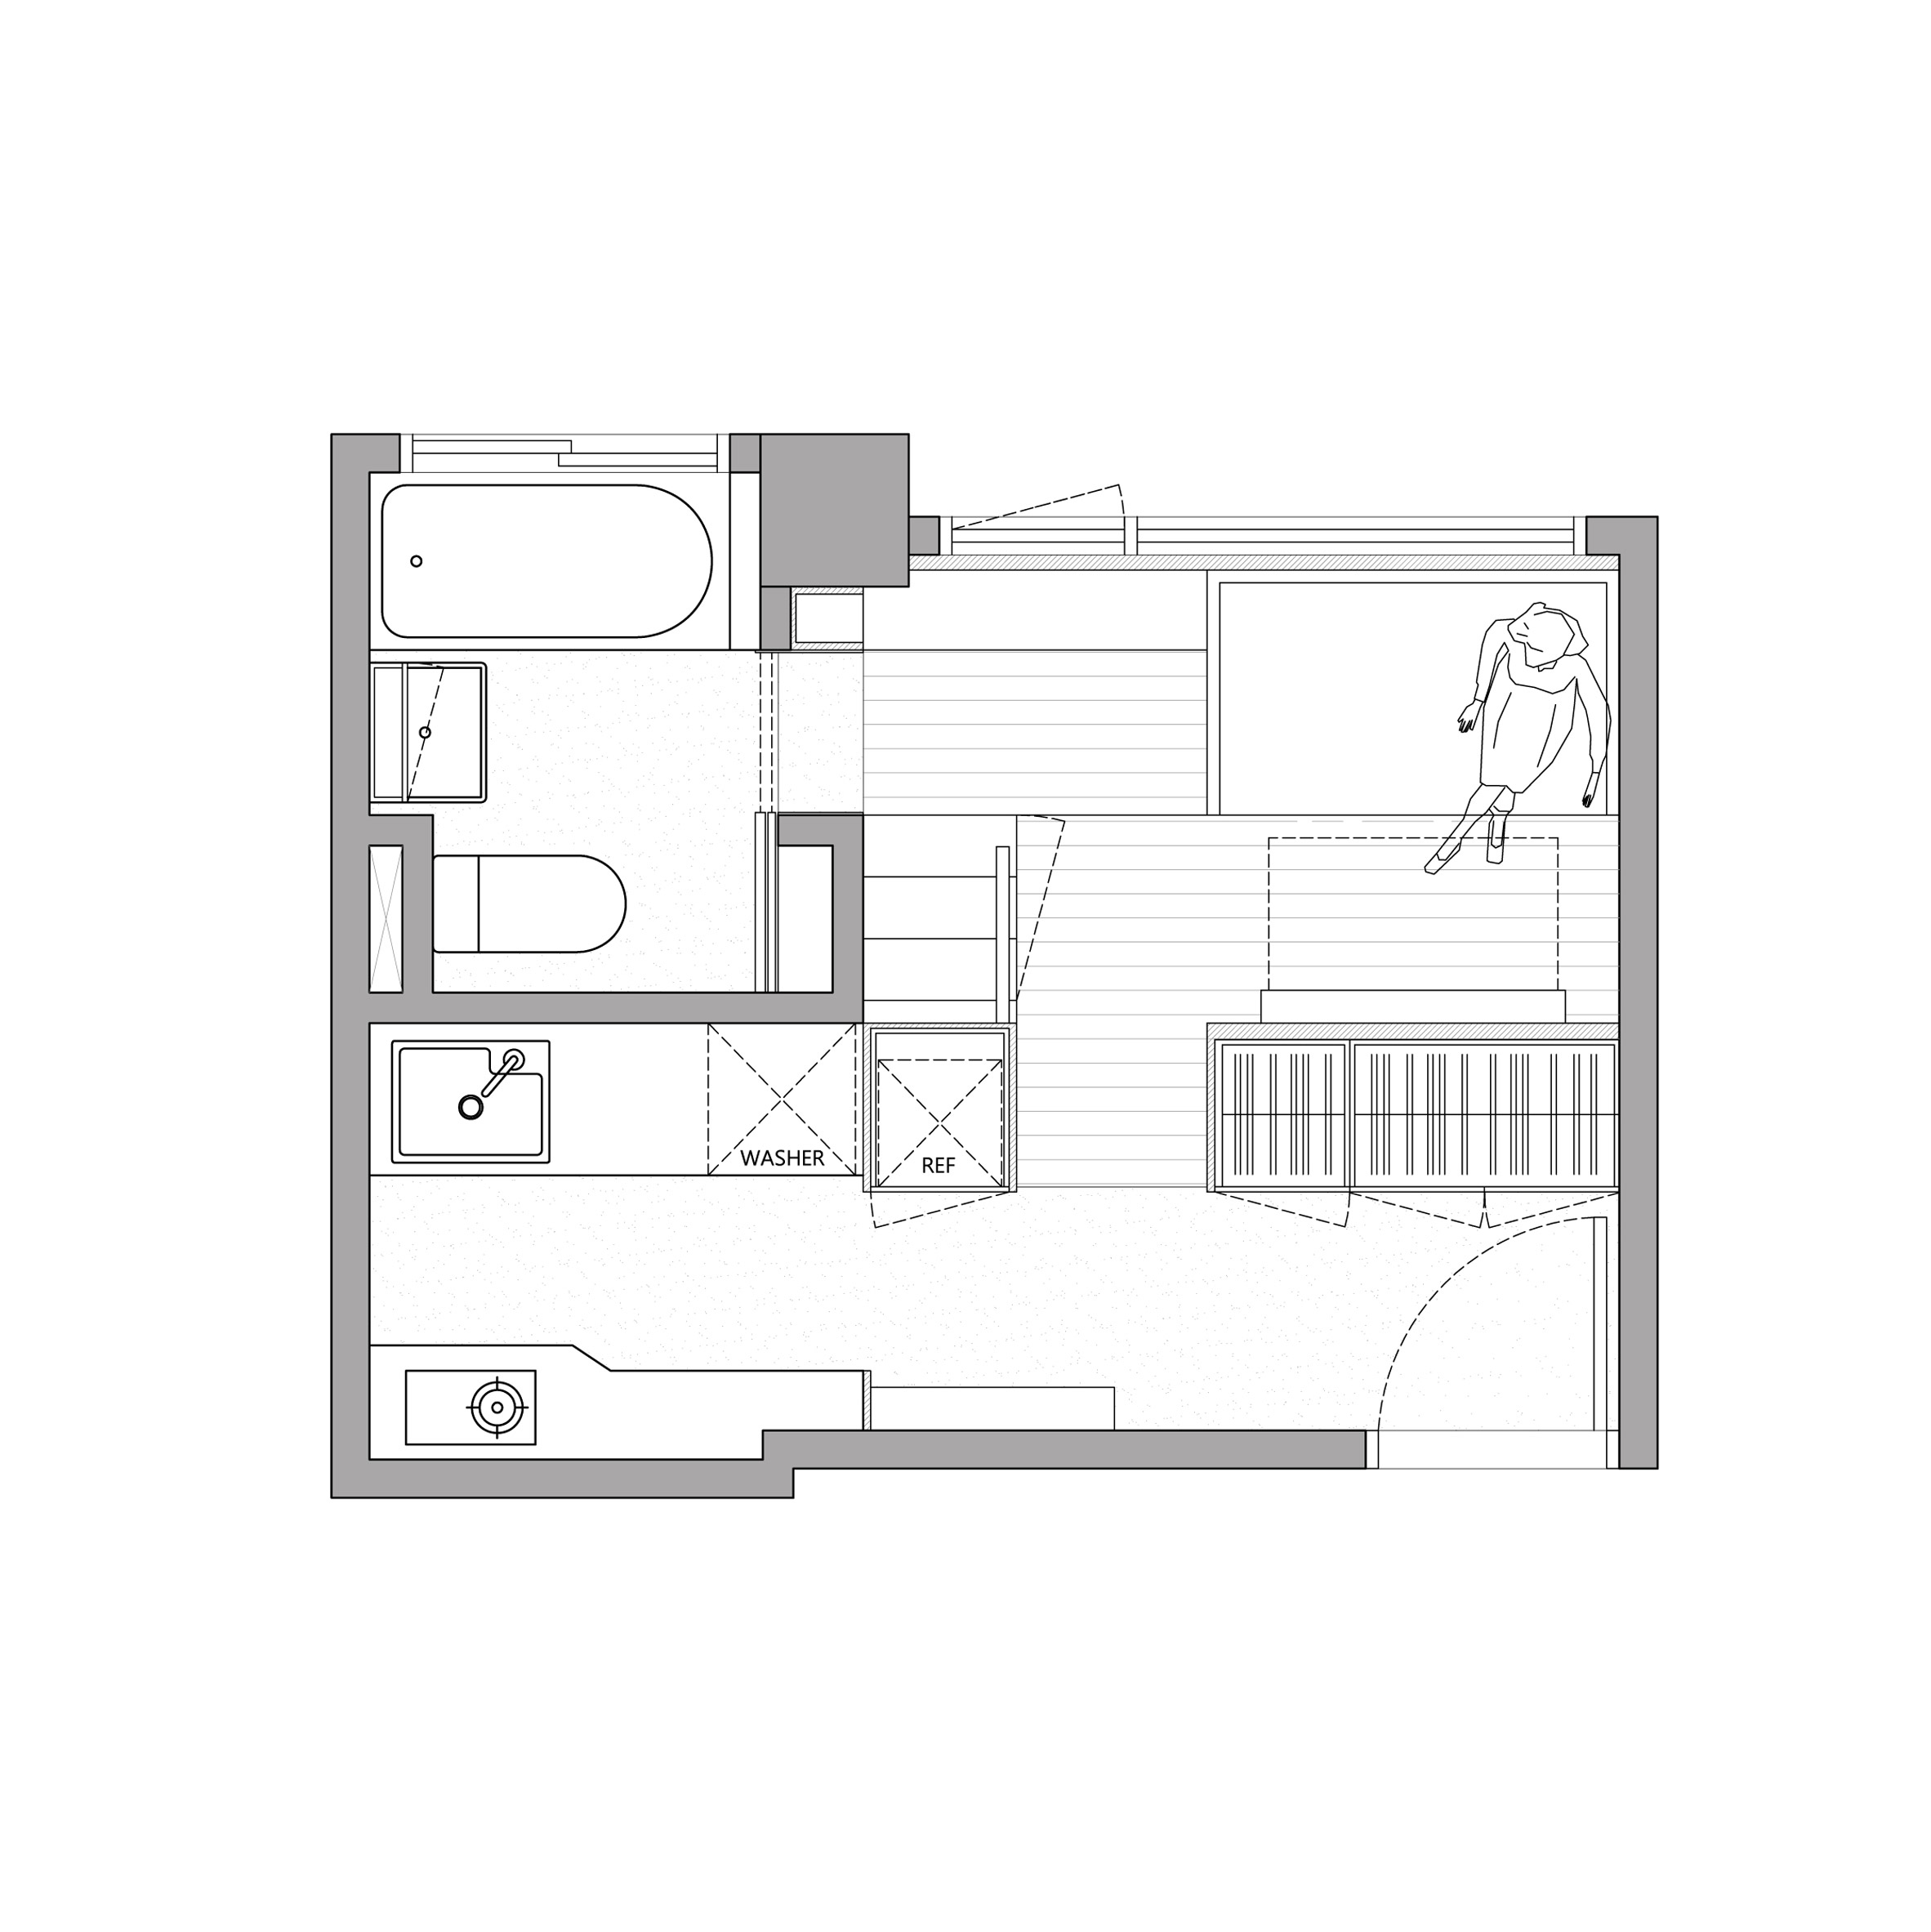 The plan reveals the space has been maximized as best as possible, especially on the main floor